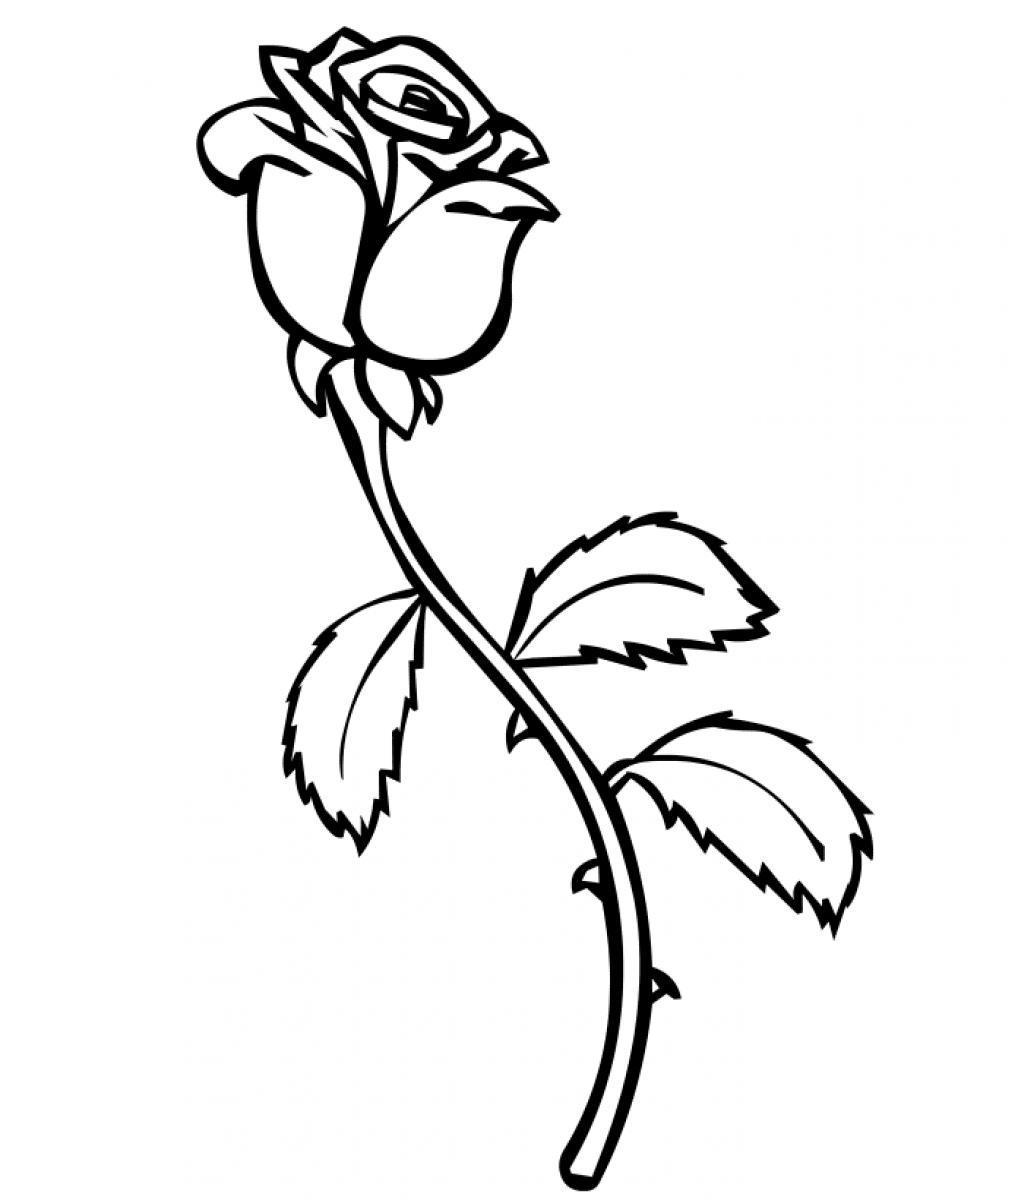 coloring sheet rose printable rose coloring pages for kids cool2bkids rose sheet coloring